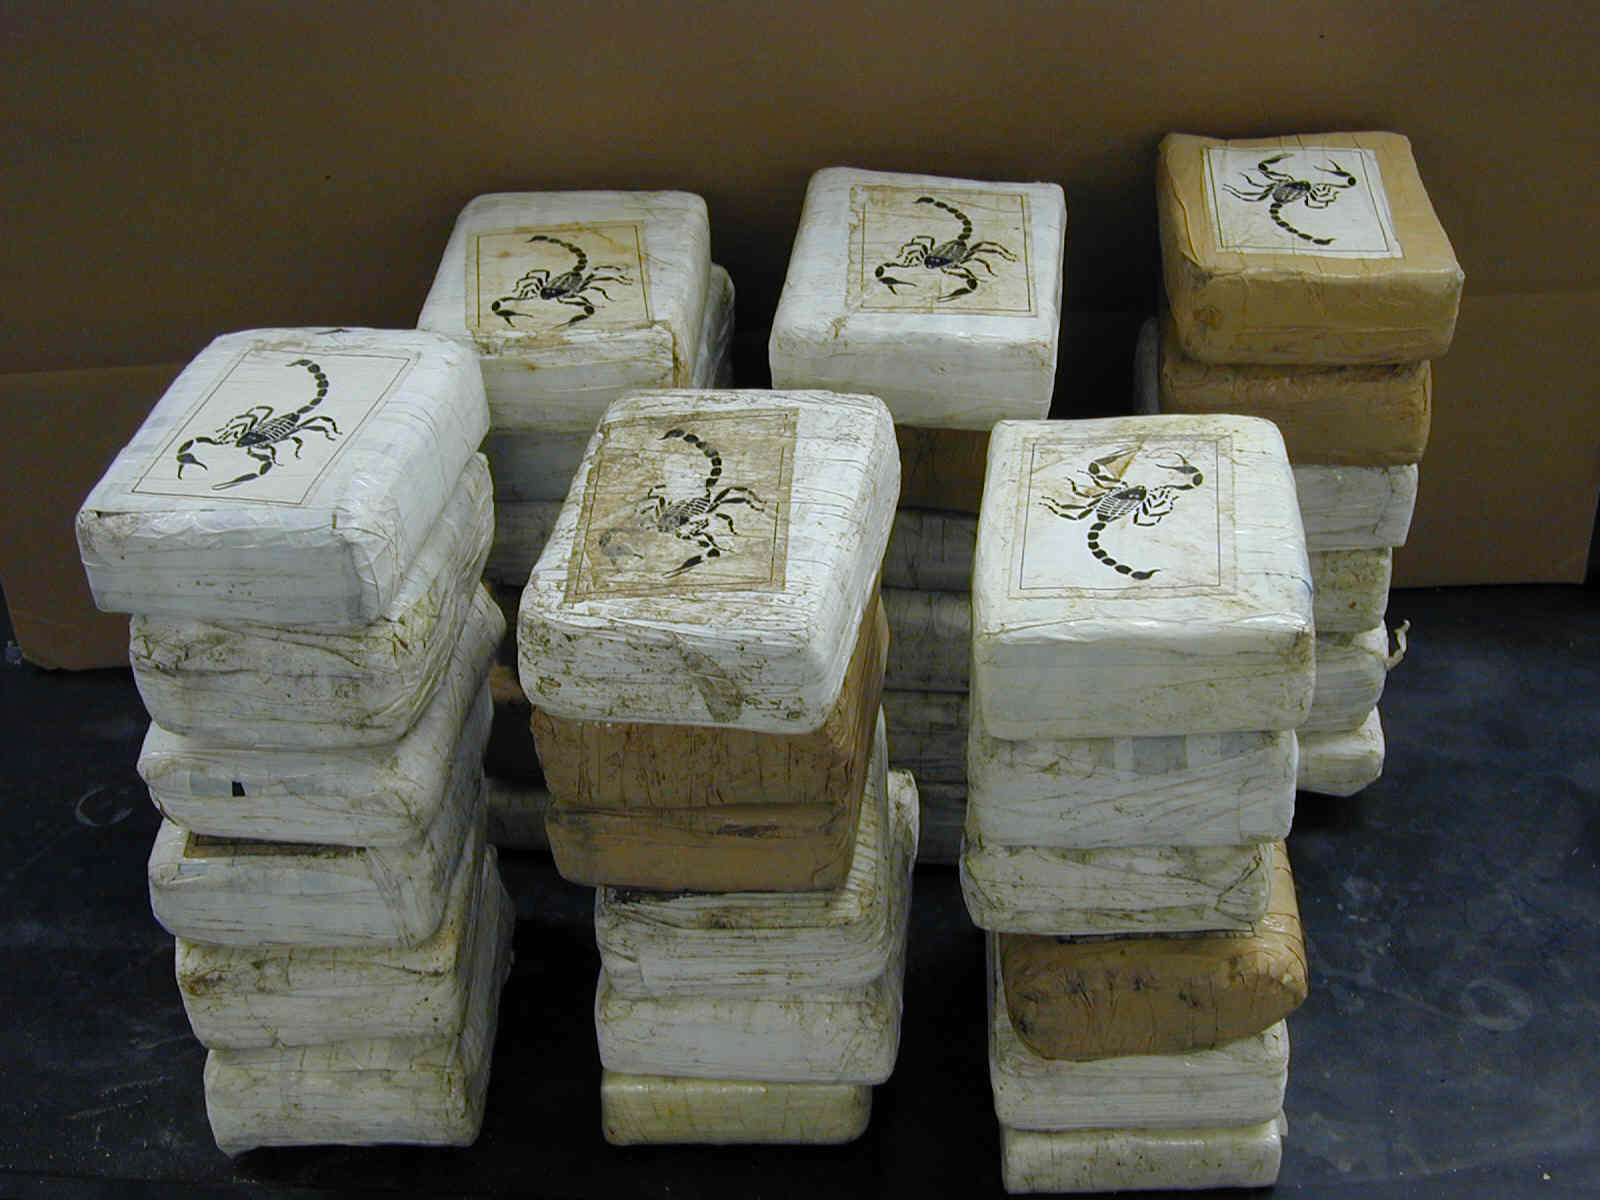 Sinaloa cartel carving drug routes in Caribbean